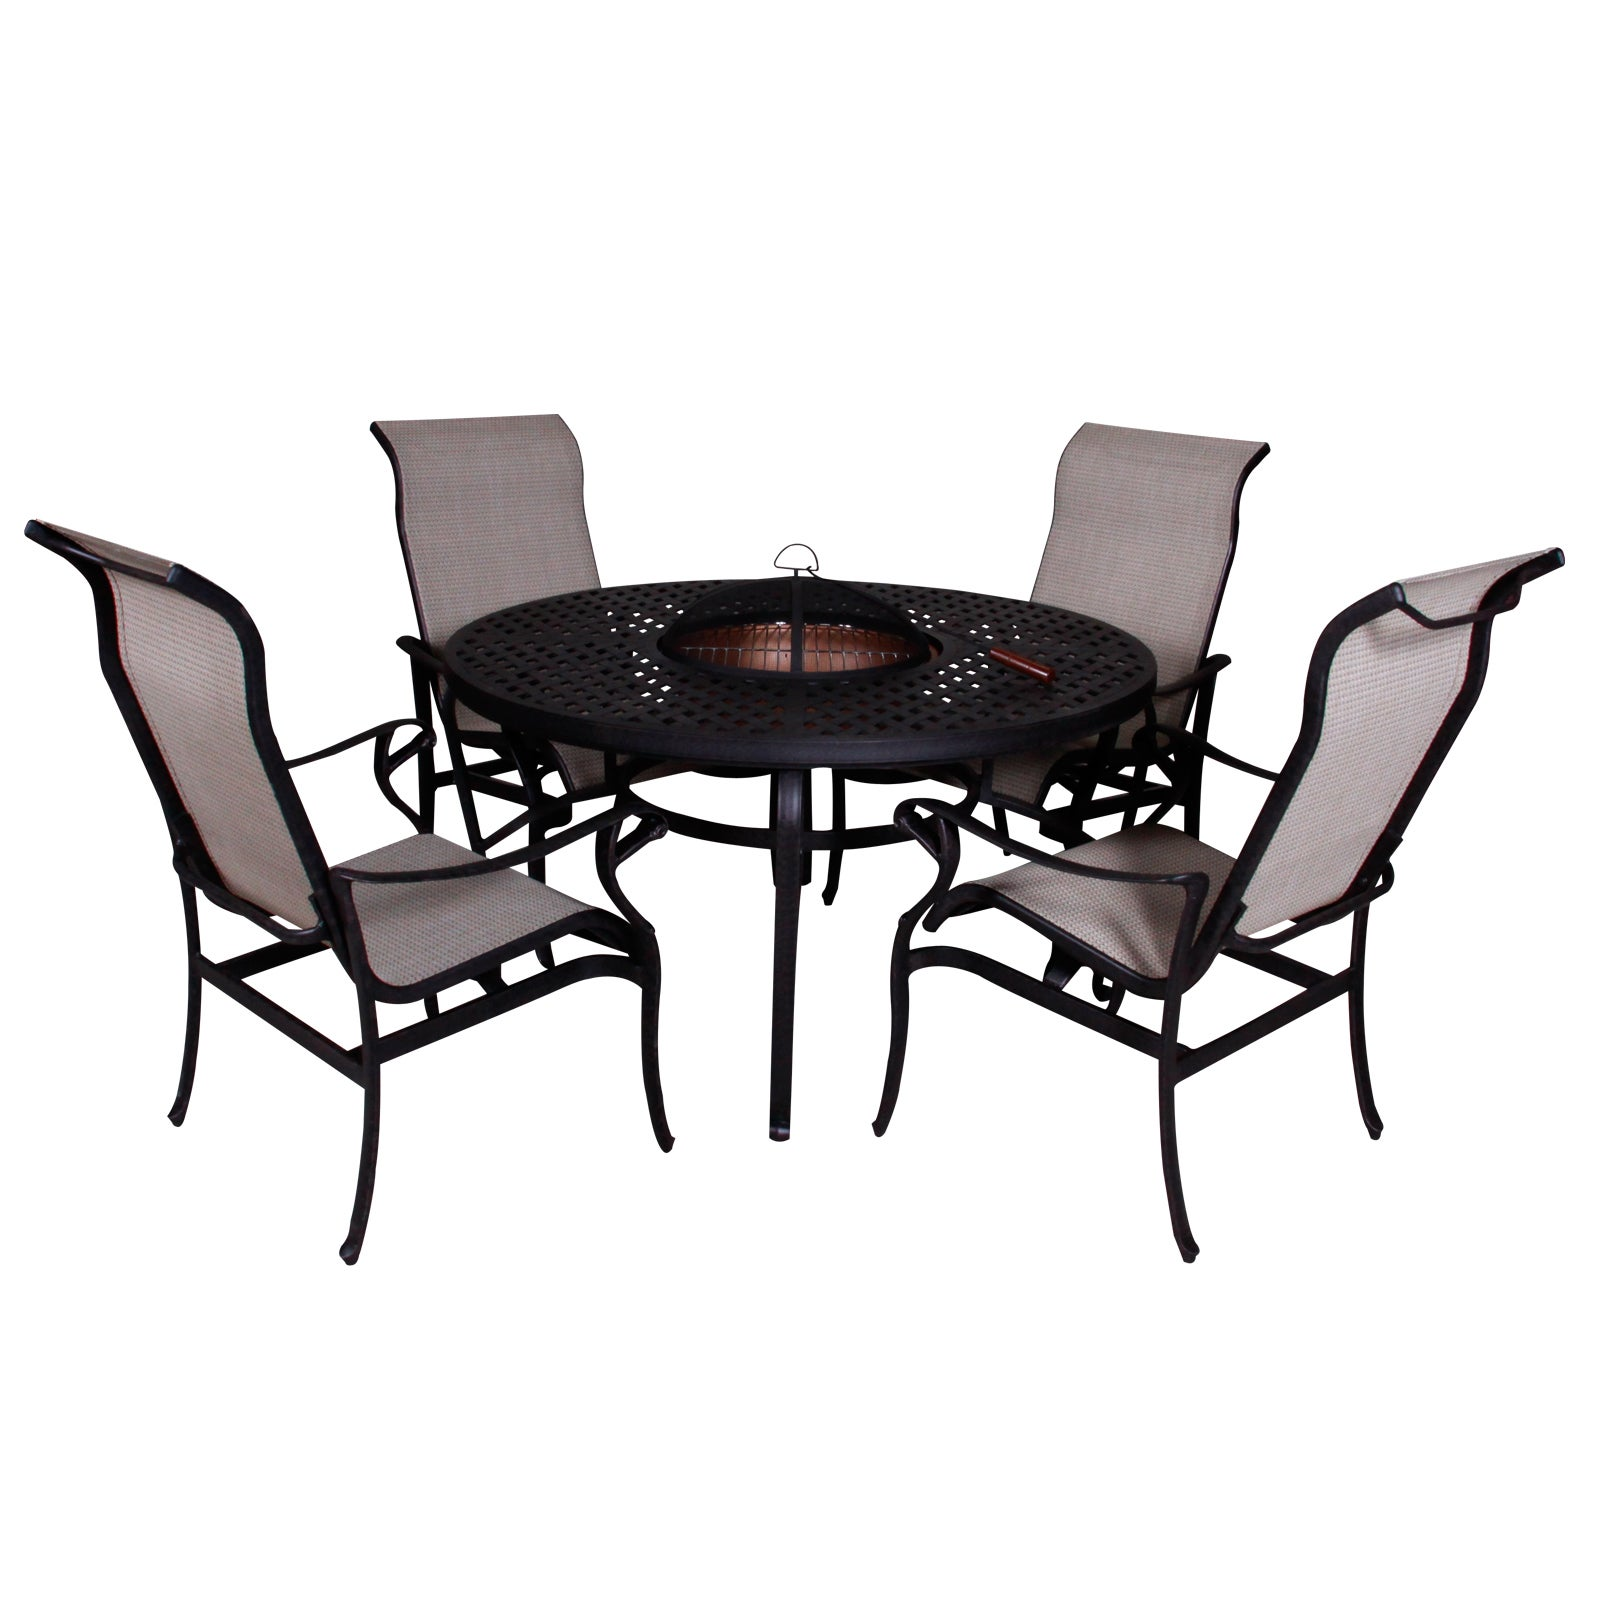 Lorraine Dining Height Fire Pit Table and Chairs (5-piece...